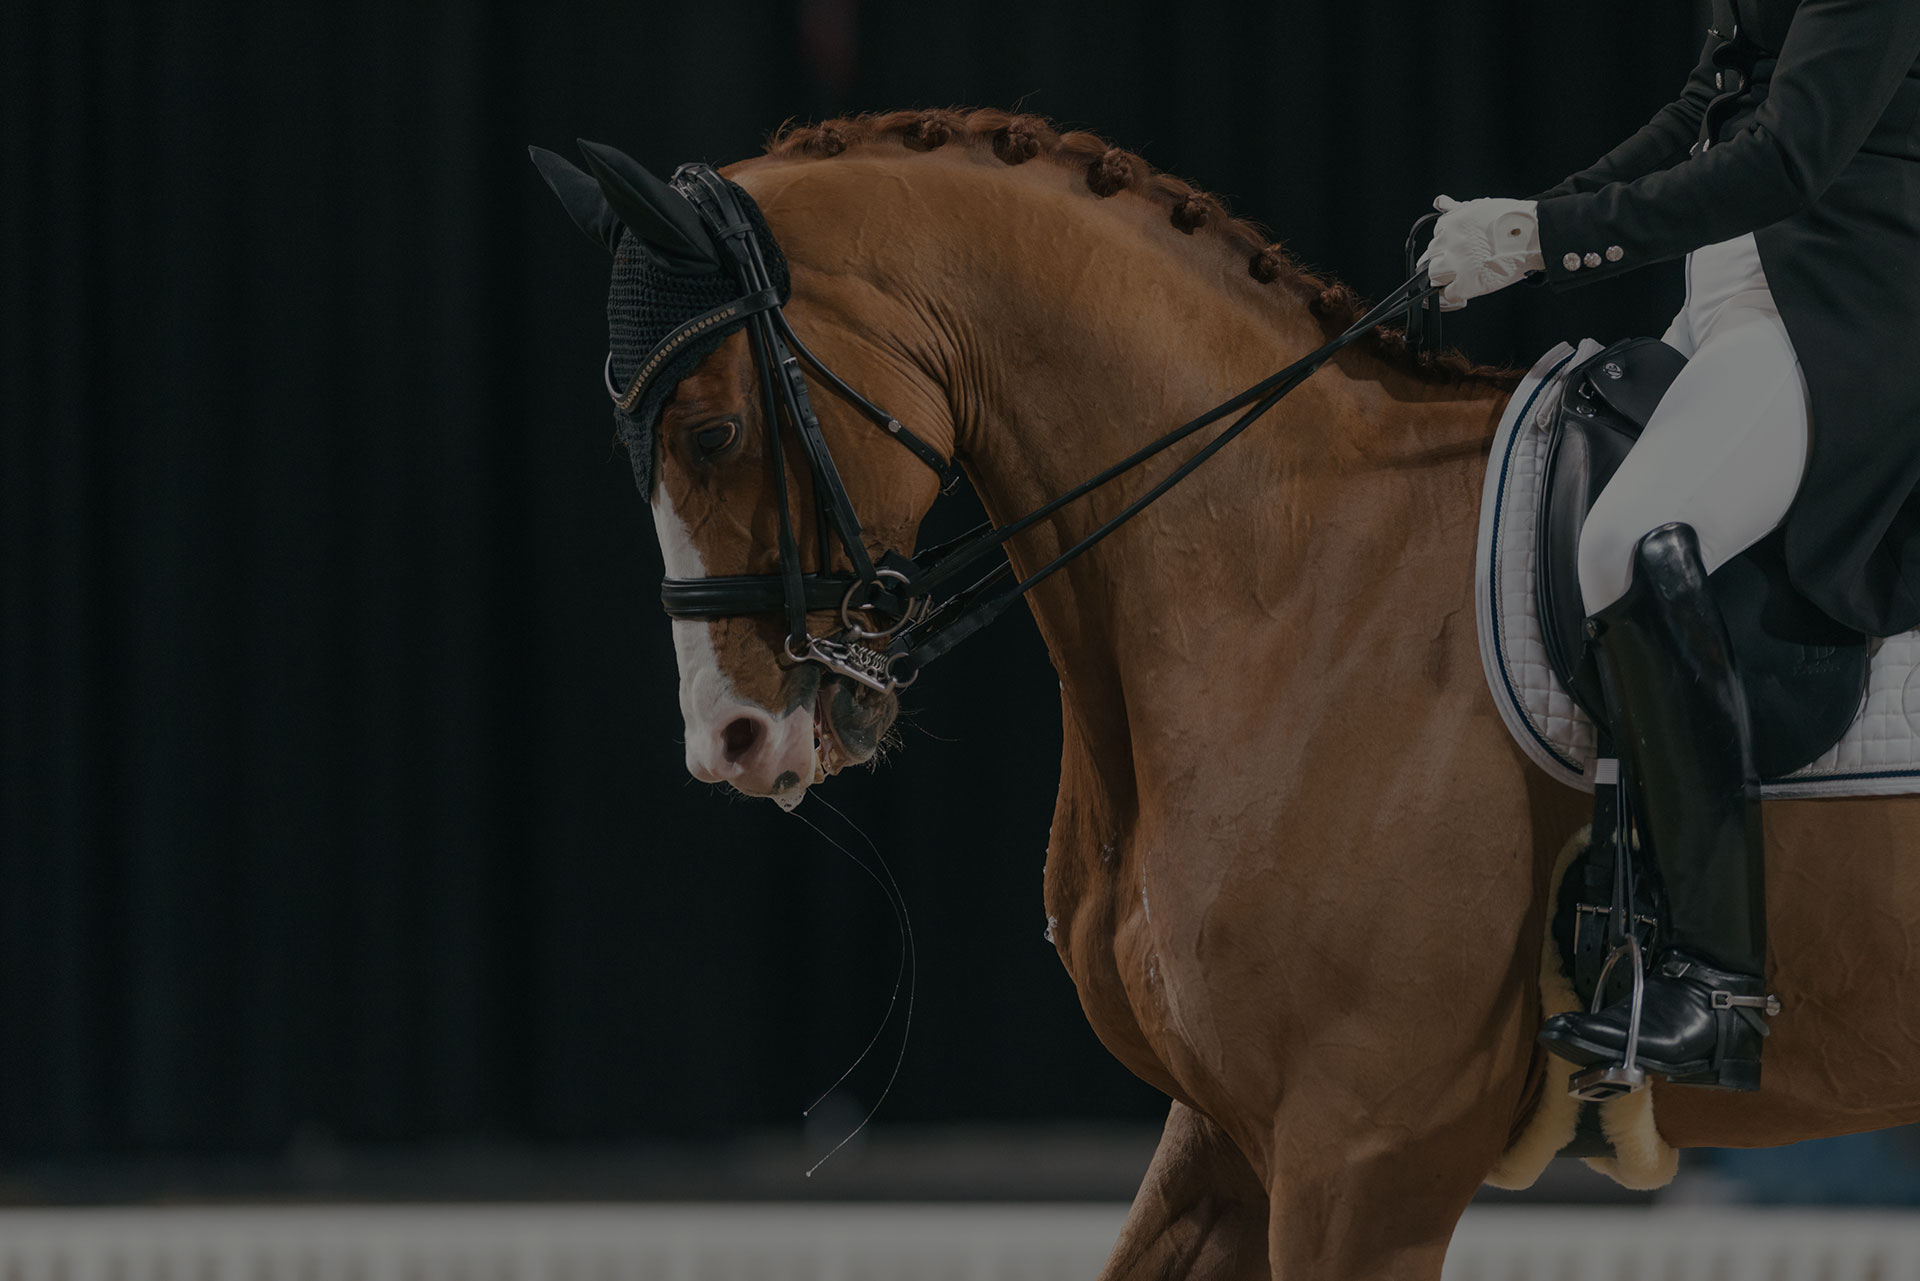 Malin Rinne at the Dressage event in the Sweden International Horse Show at Friends arena